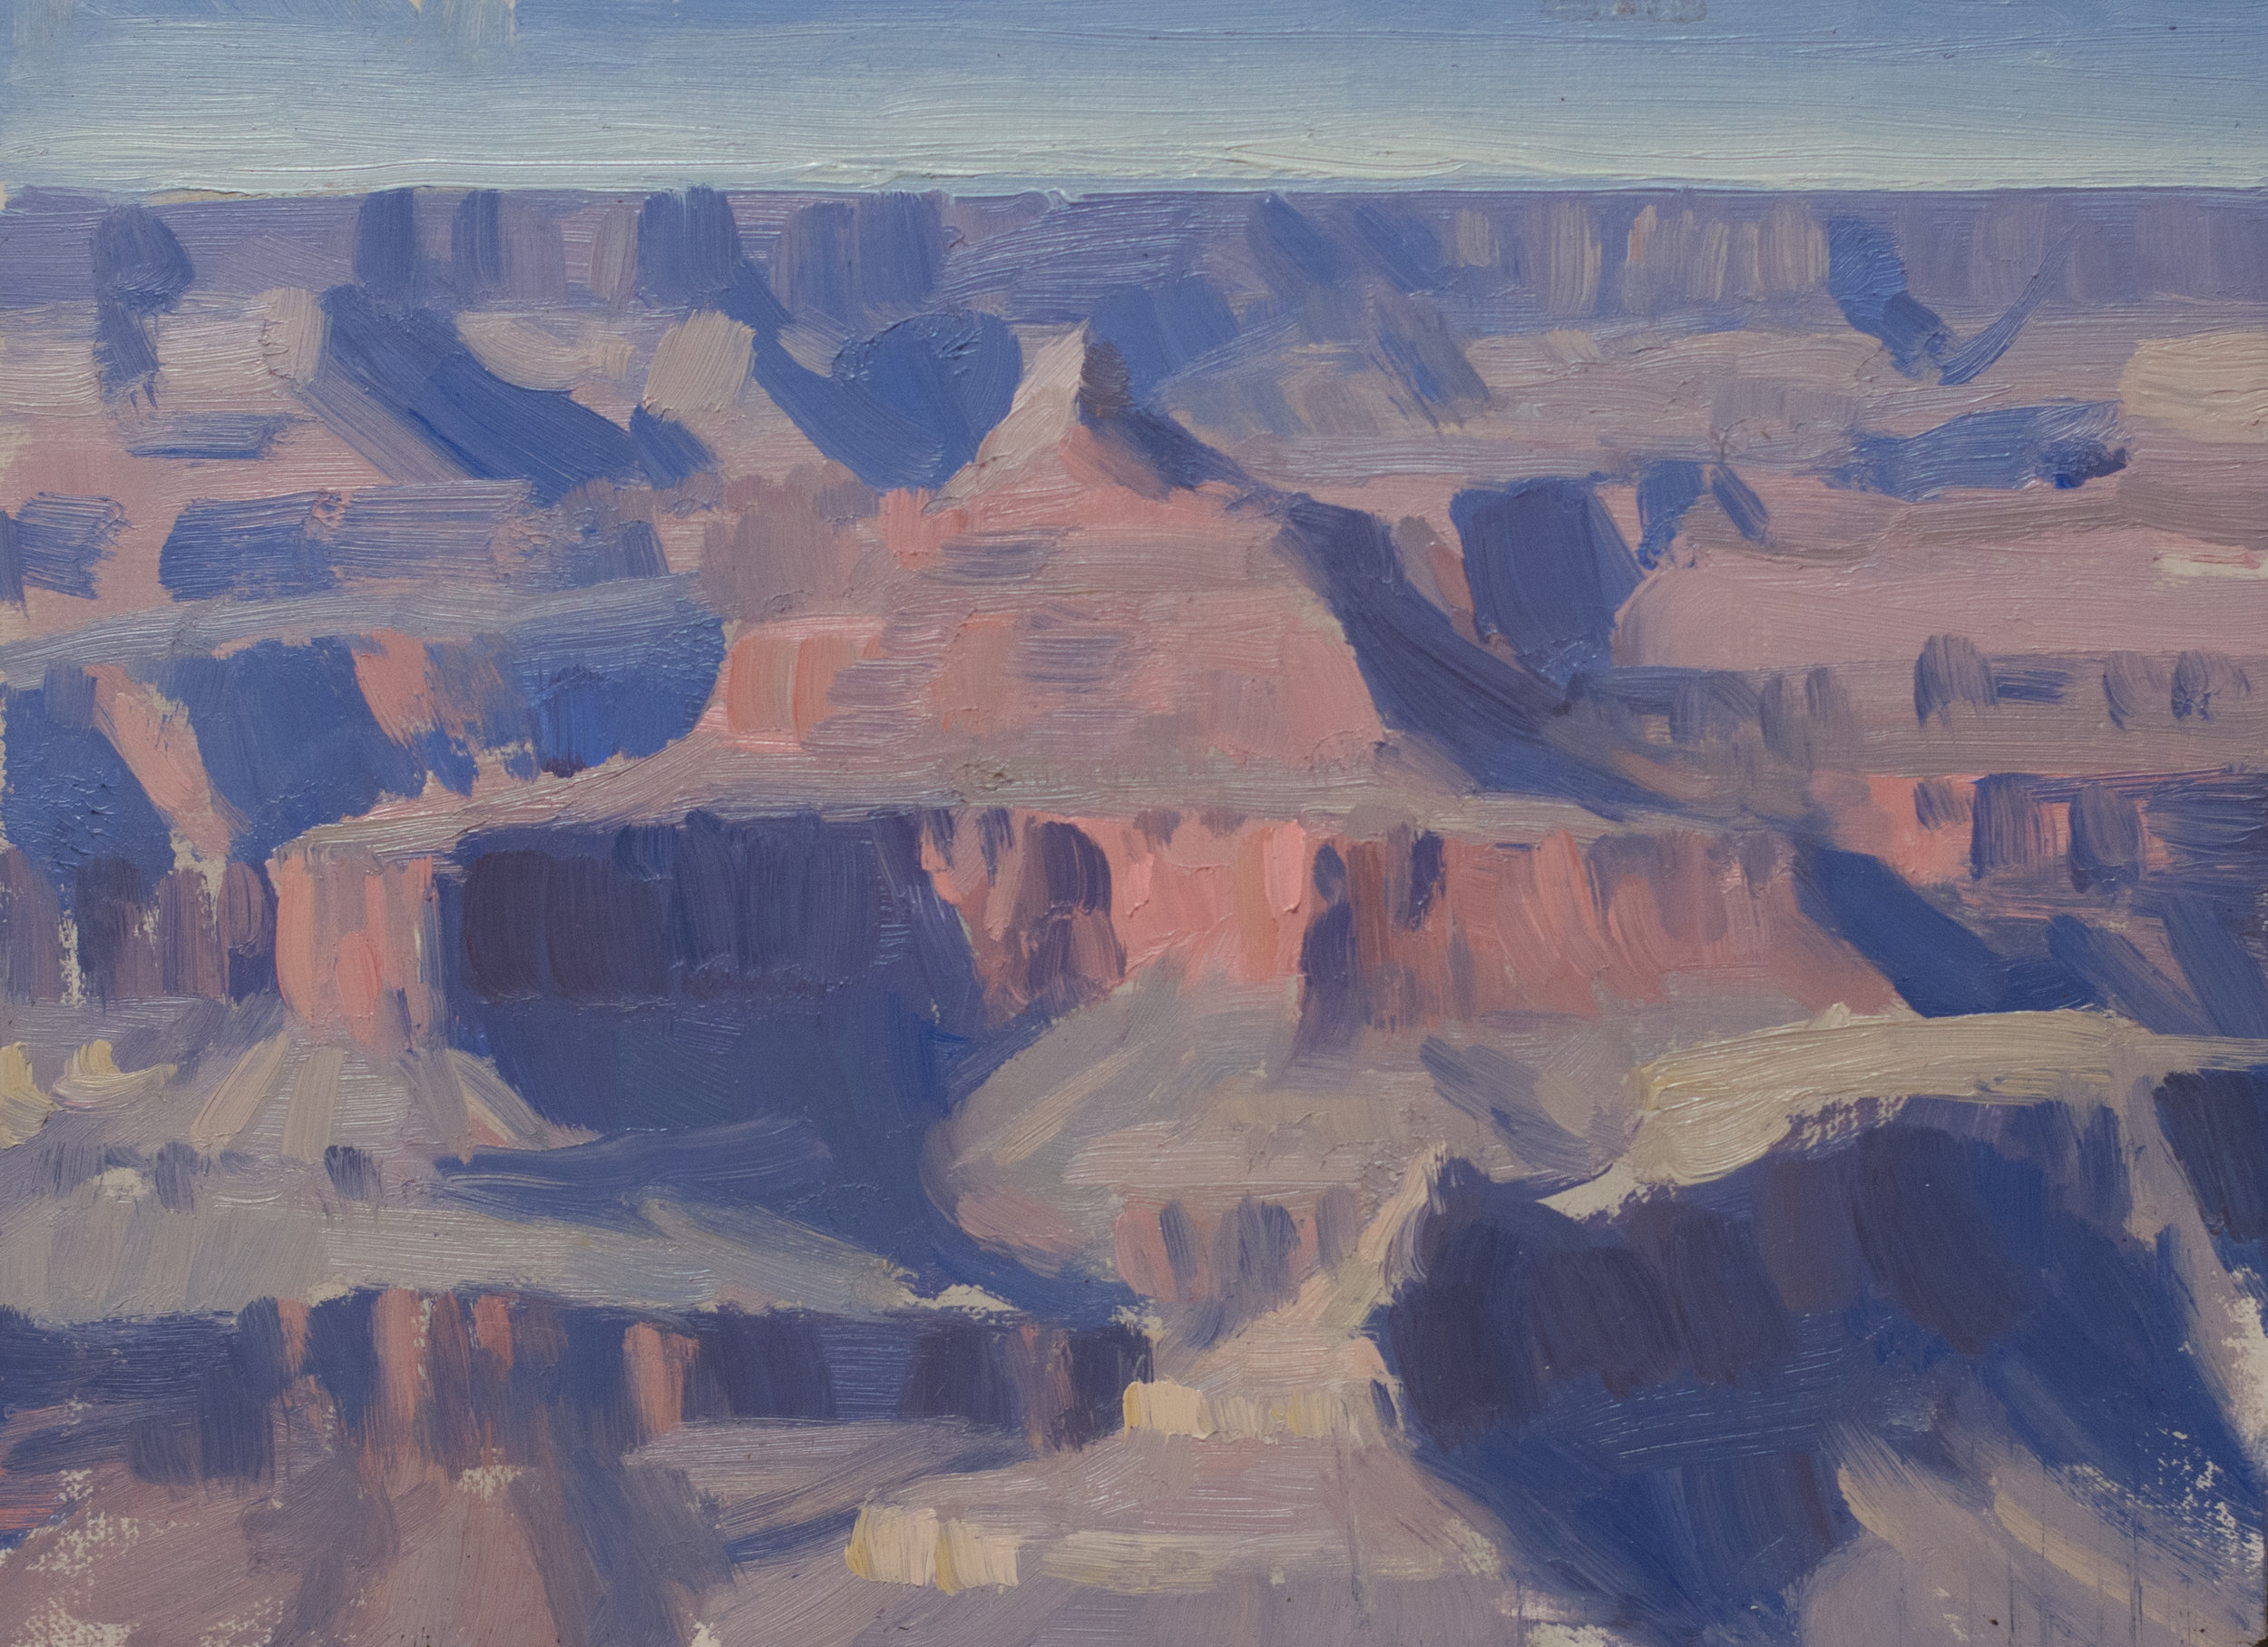 Grand Canyon Study, 8 x 10 inches, oil on linen